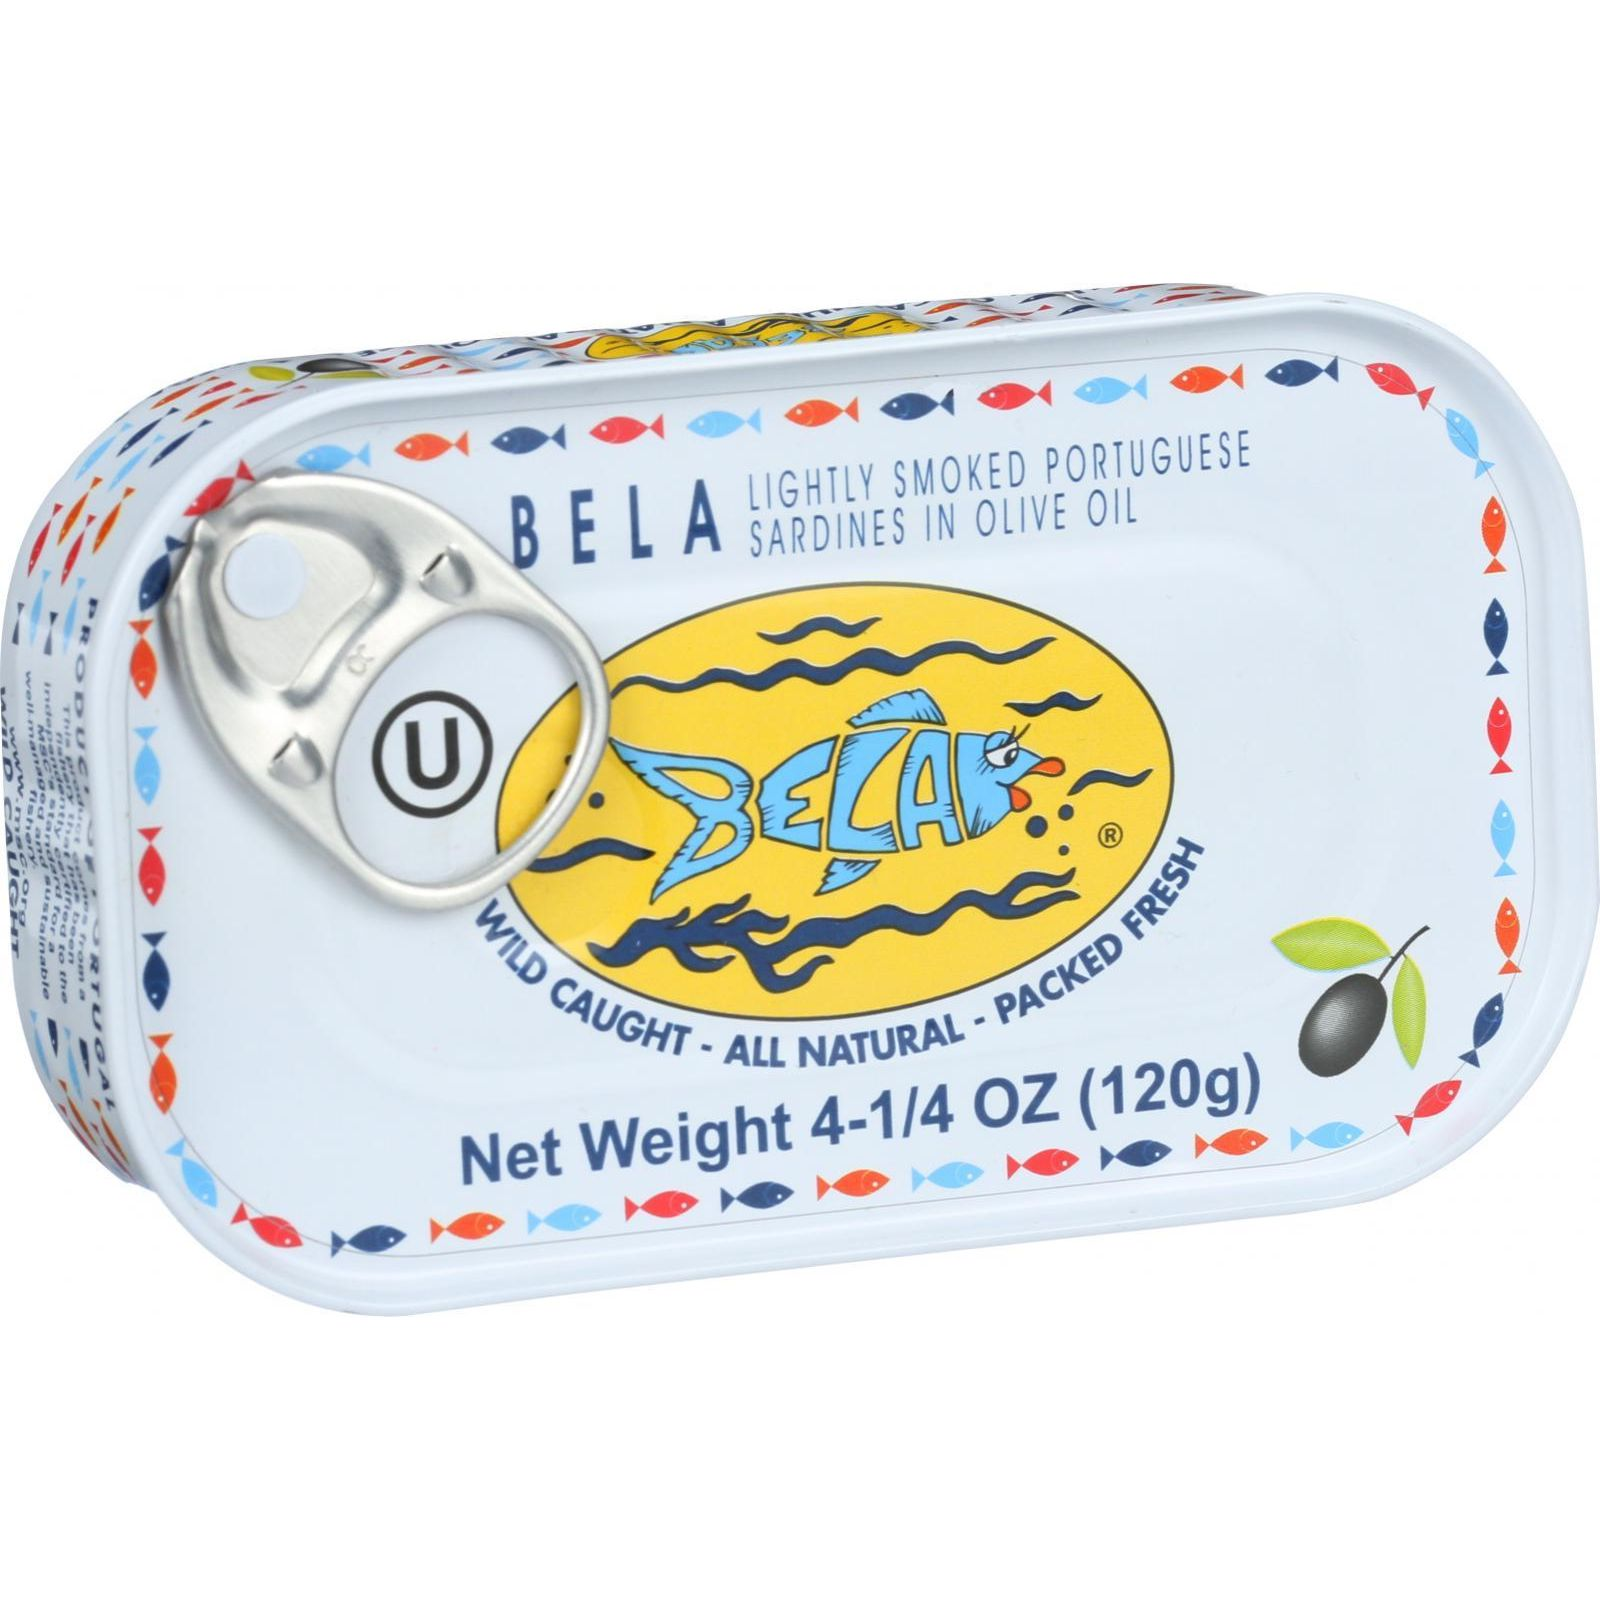 Bela Canned Lightly Smoked Sardines, in Olive Oil, 4.25 Oz by Blue Galleon